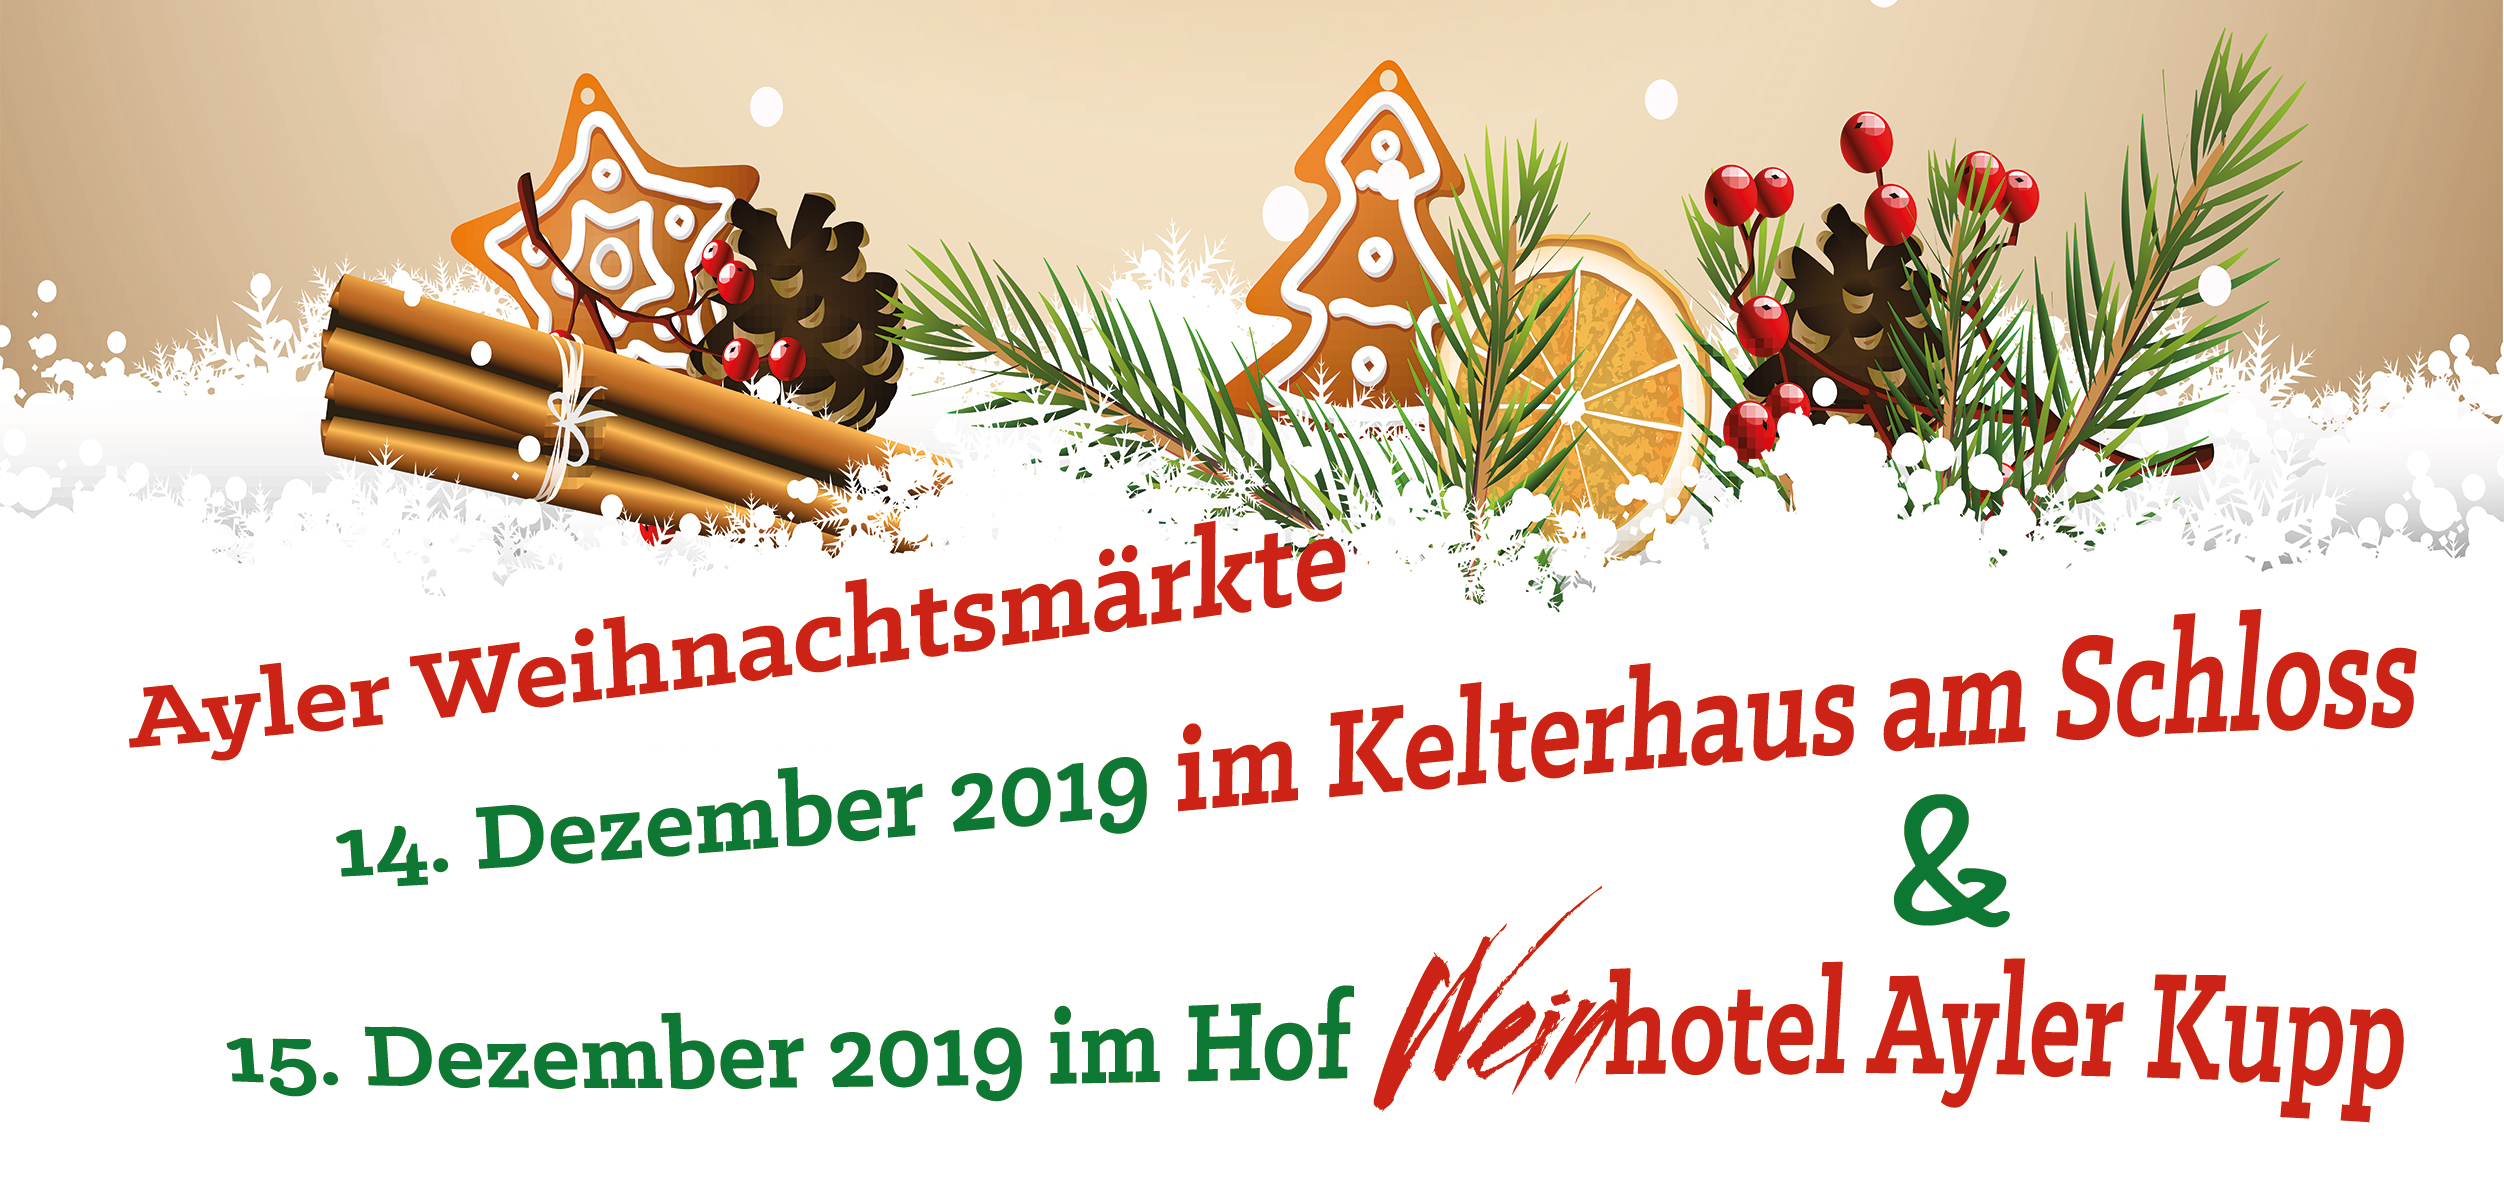 Flyer about Christmas markets in 2019